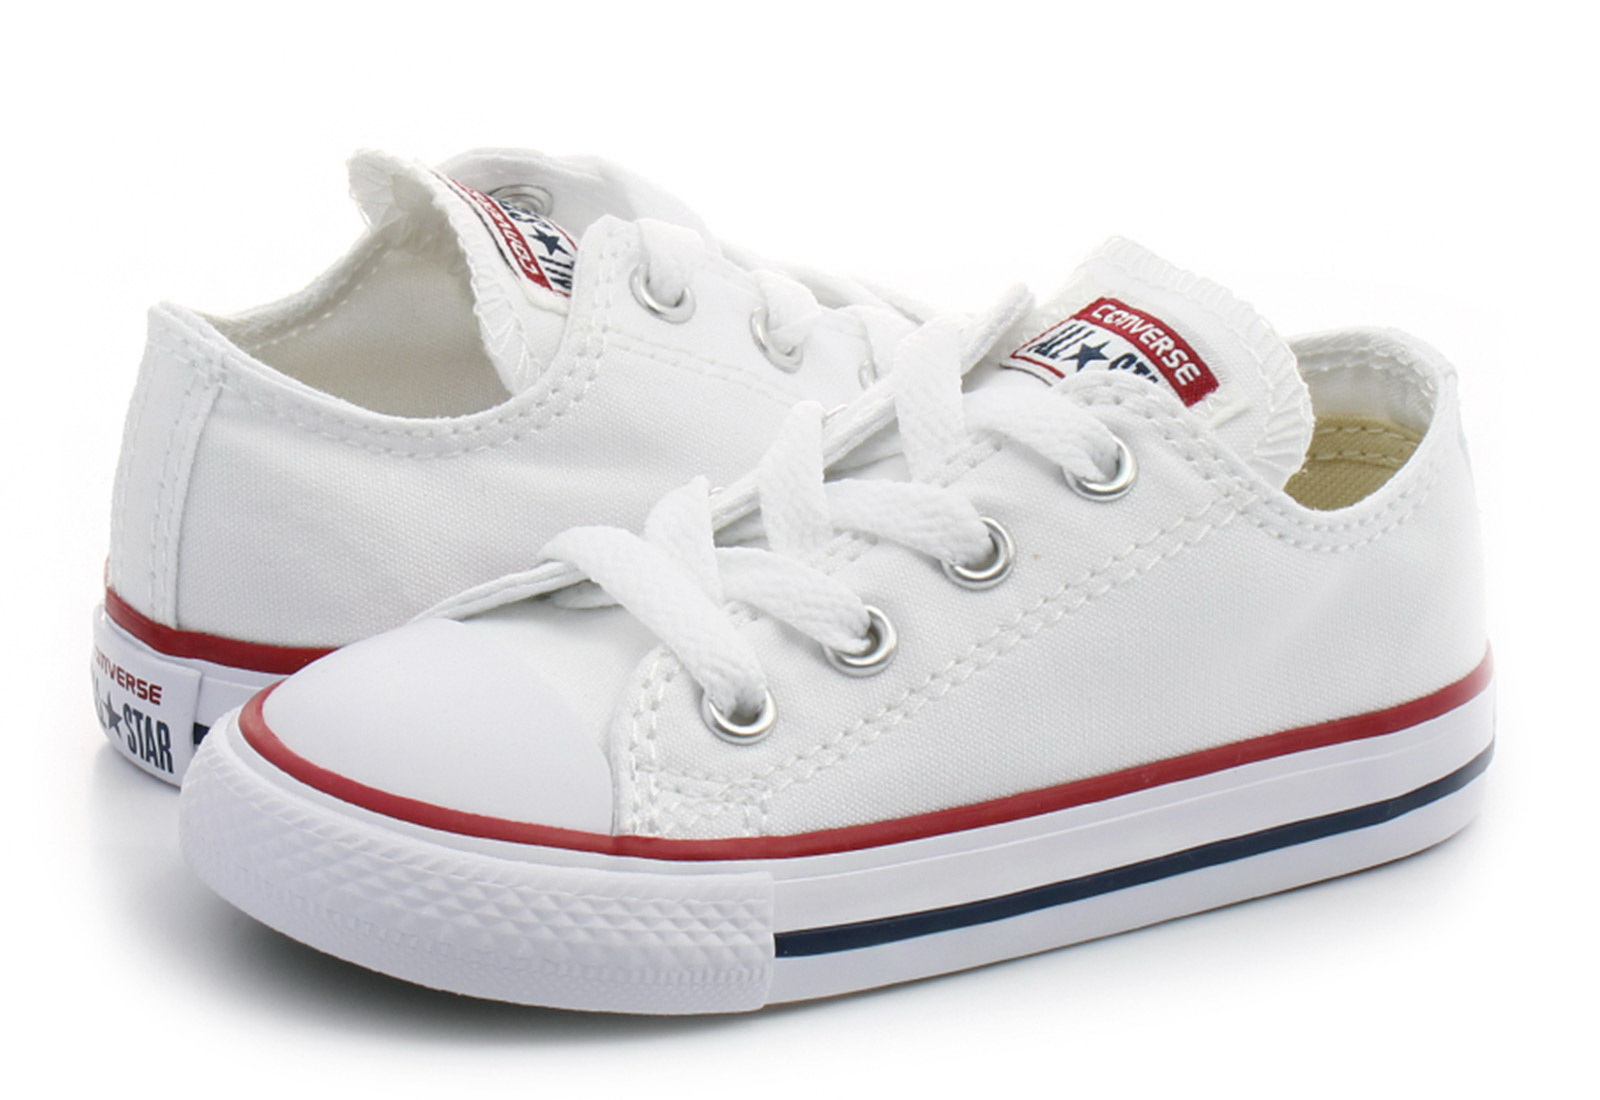 f7cd1e0b8a77 Converse Trampki - Ct As Kids Core Ox - 7J256C - Obuwie i buty ...